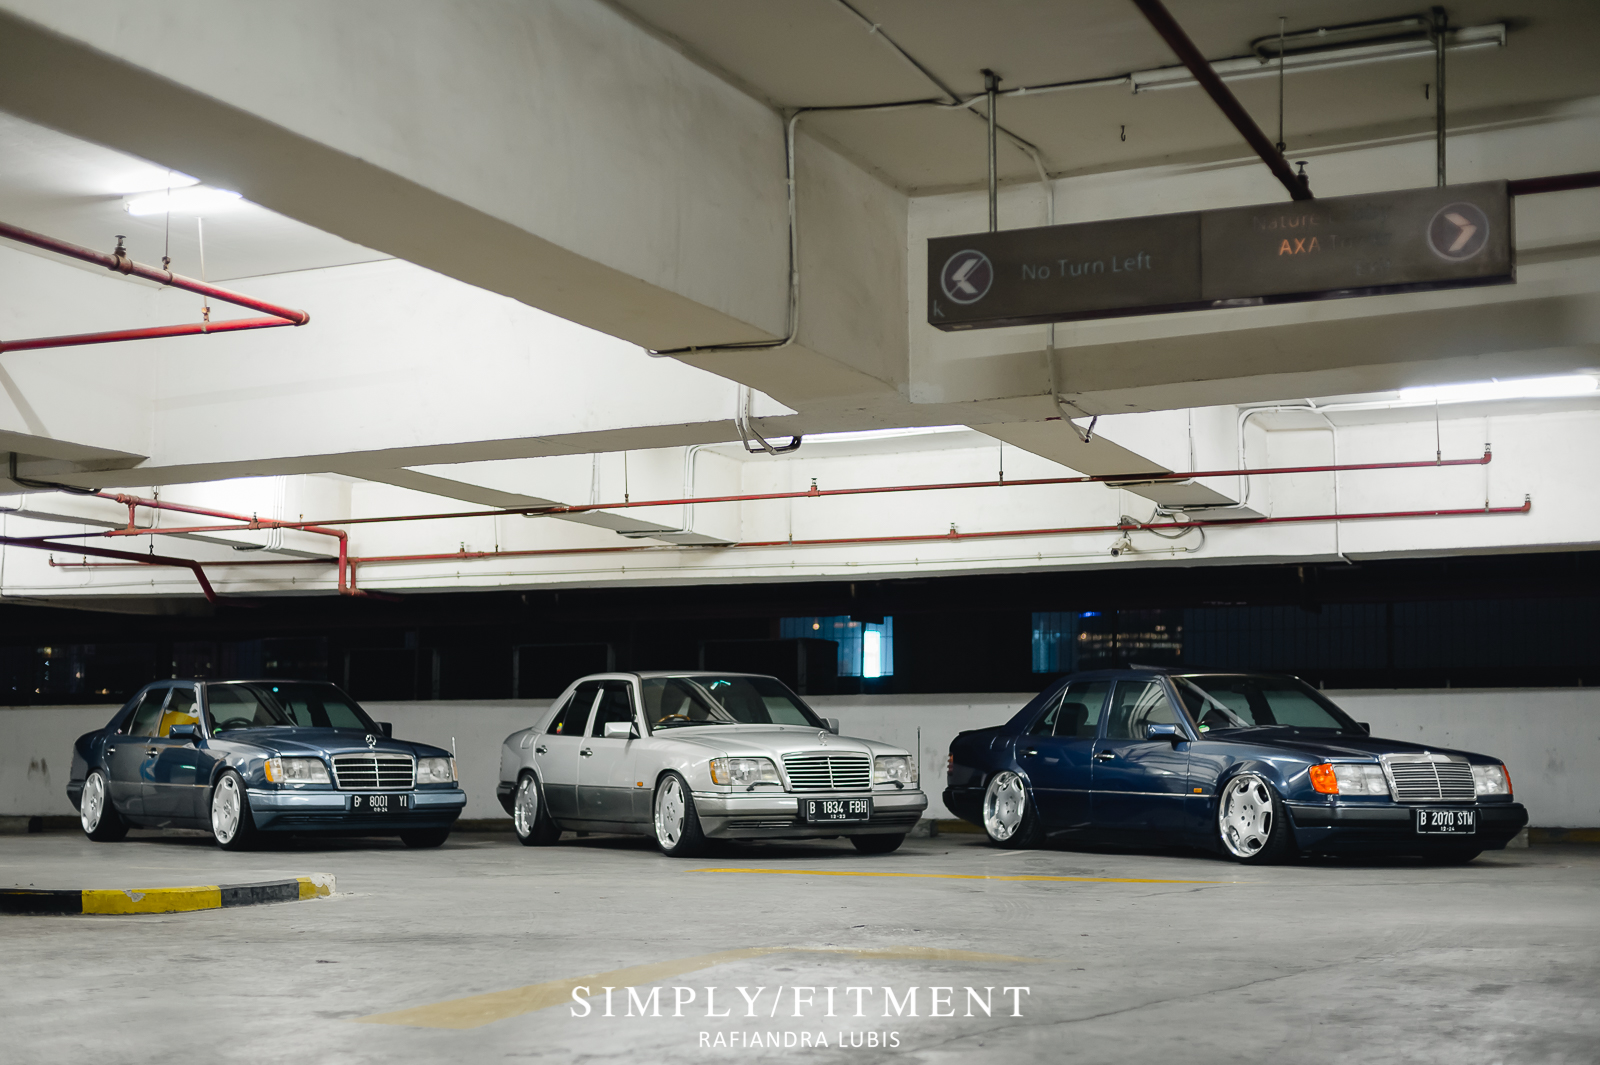 LOWFITMENT DAY 16 - DAY 1 (11 DESEMBER 2020)